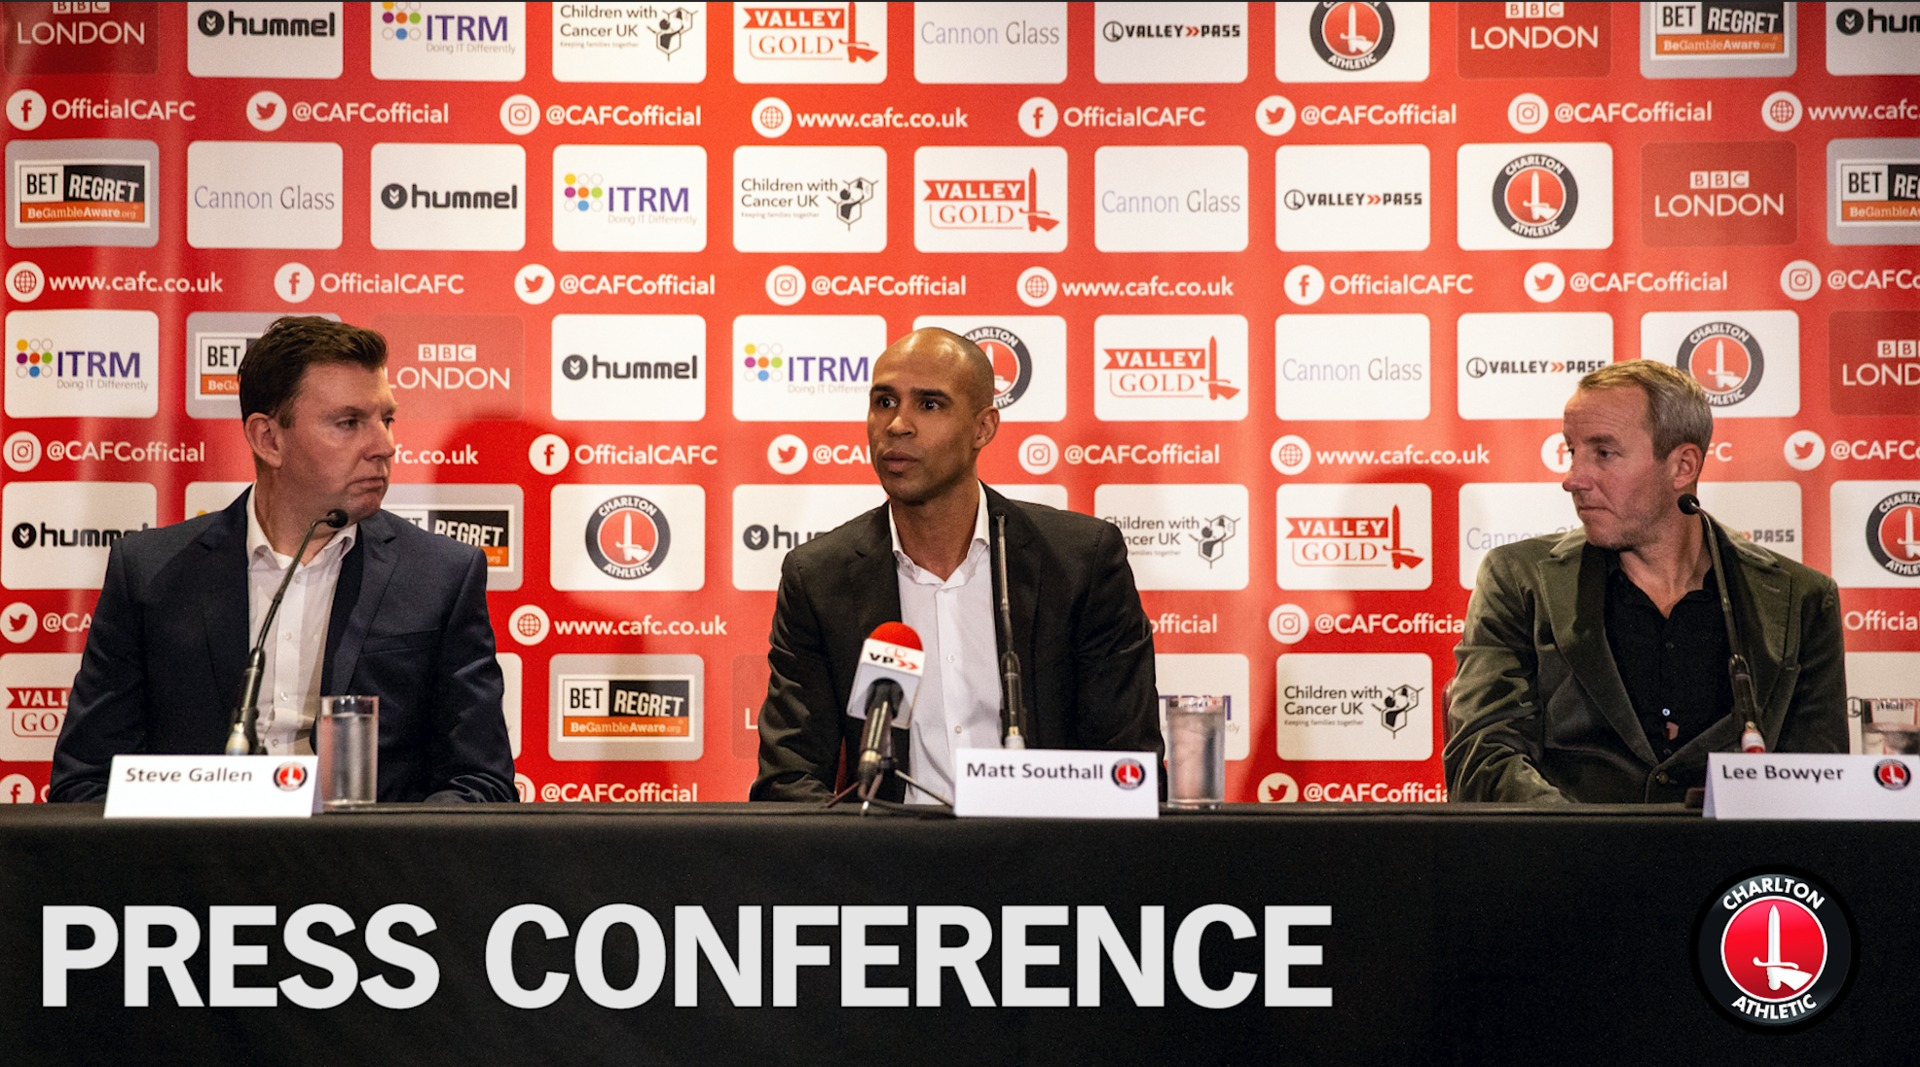 Press conference | Matt Southall, Lee Bowyer and Steve Gallen